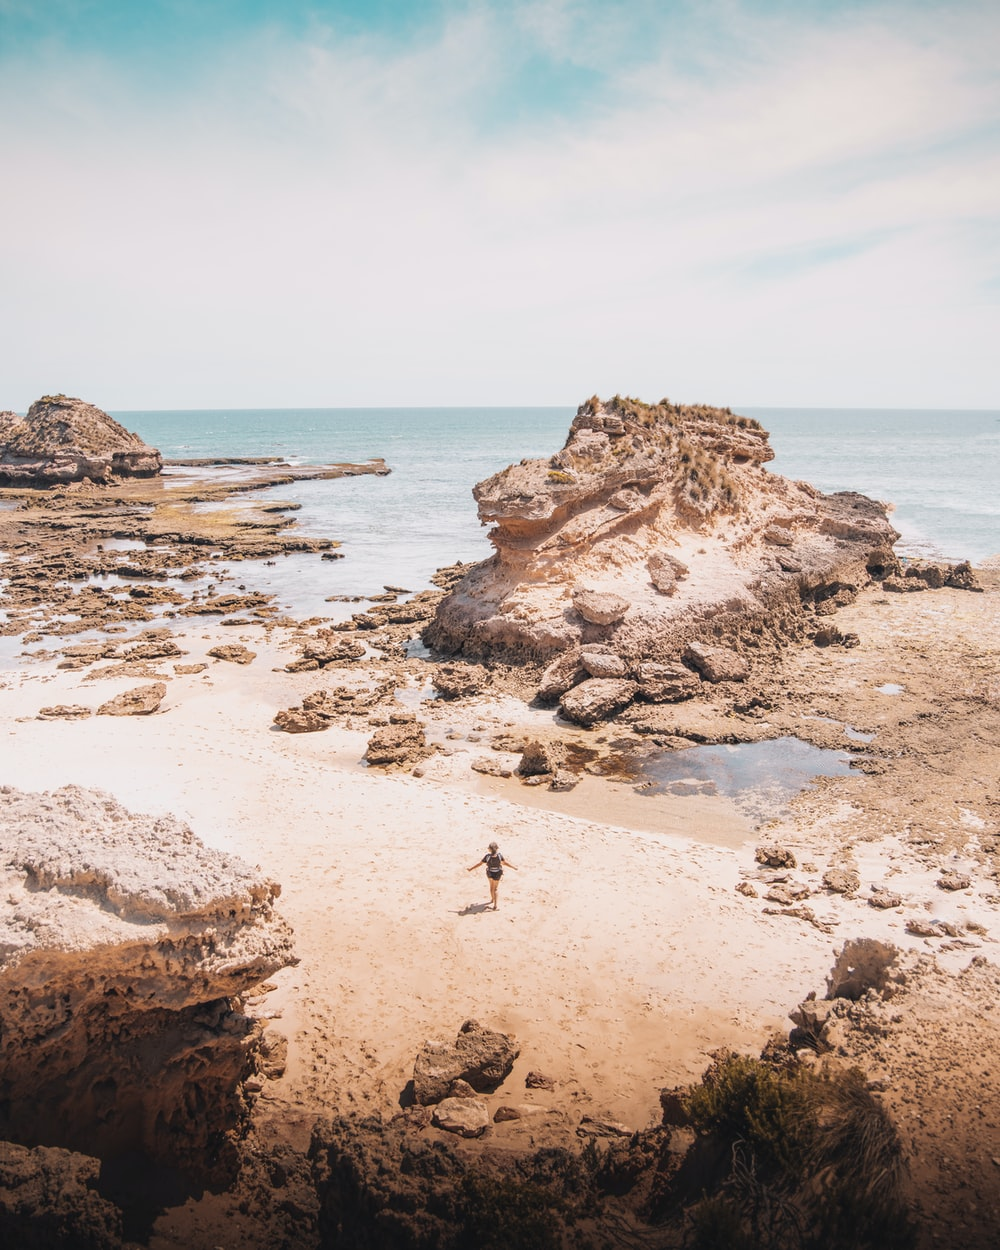 person standing on brown rock formation near body of water during daytime